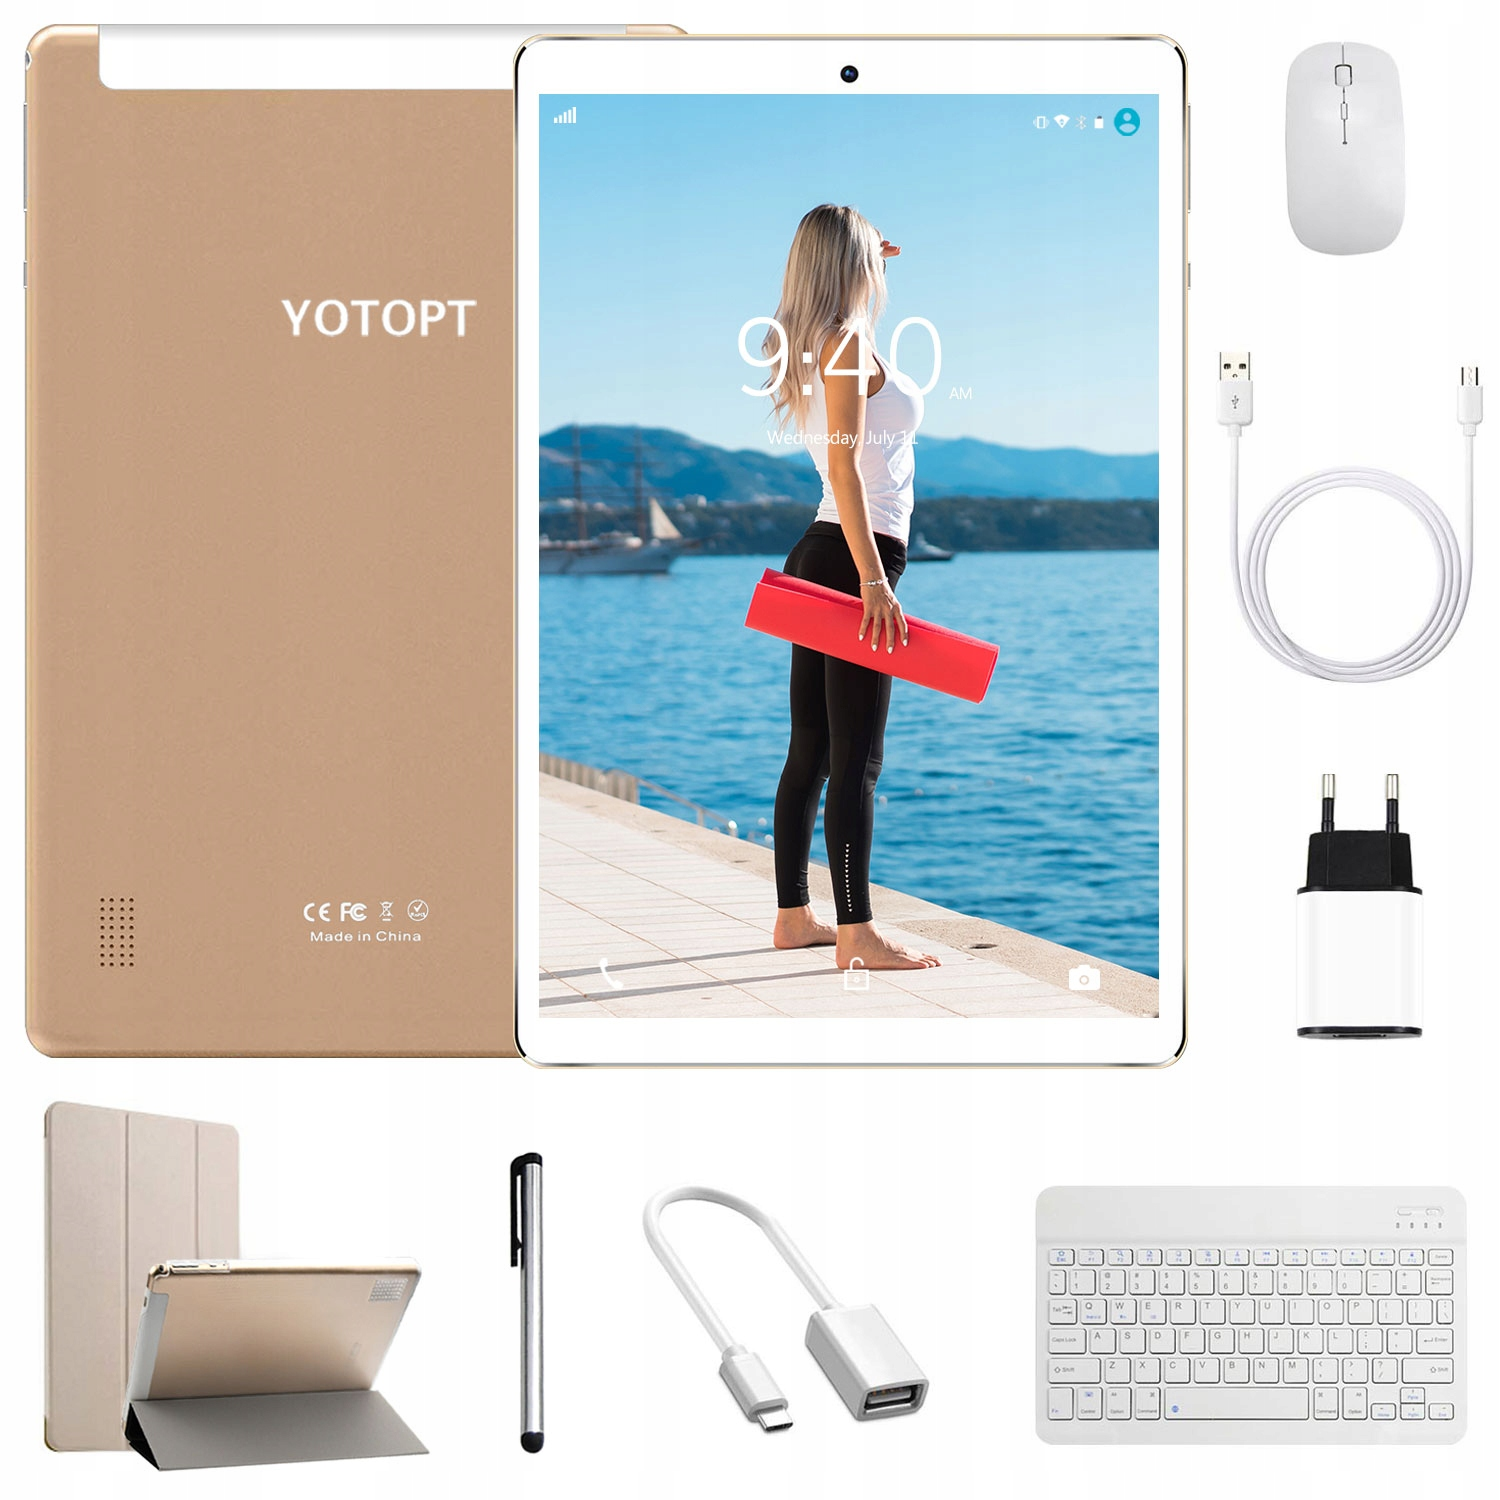 YOTOPT 10 cali tablet 3G/WiFi 2GB 32GB android 9.0 Marka YOTOPT